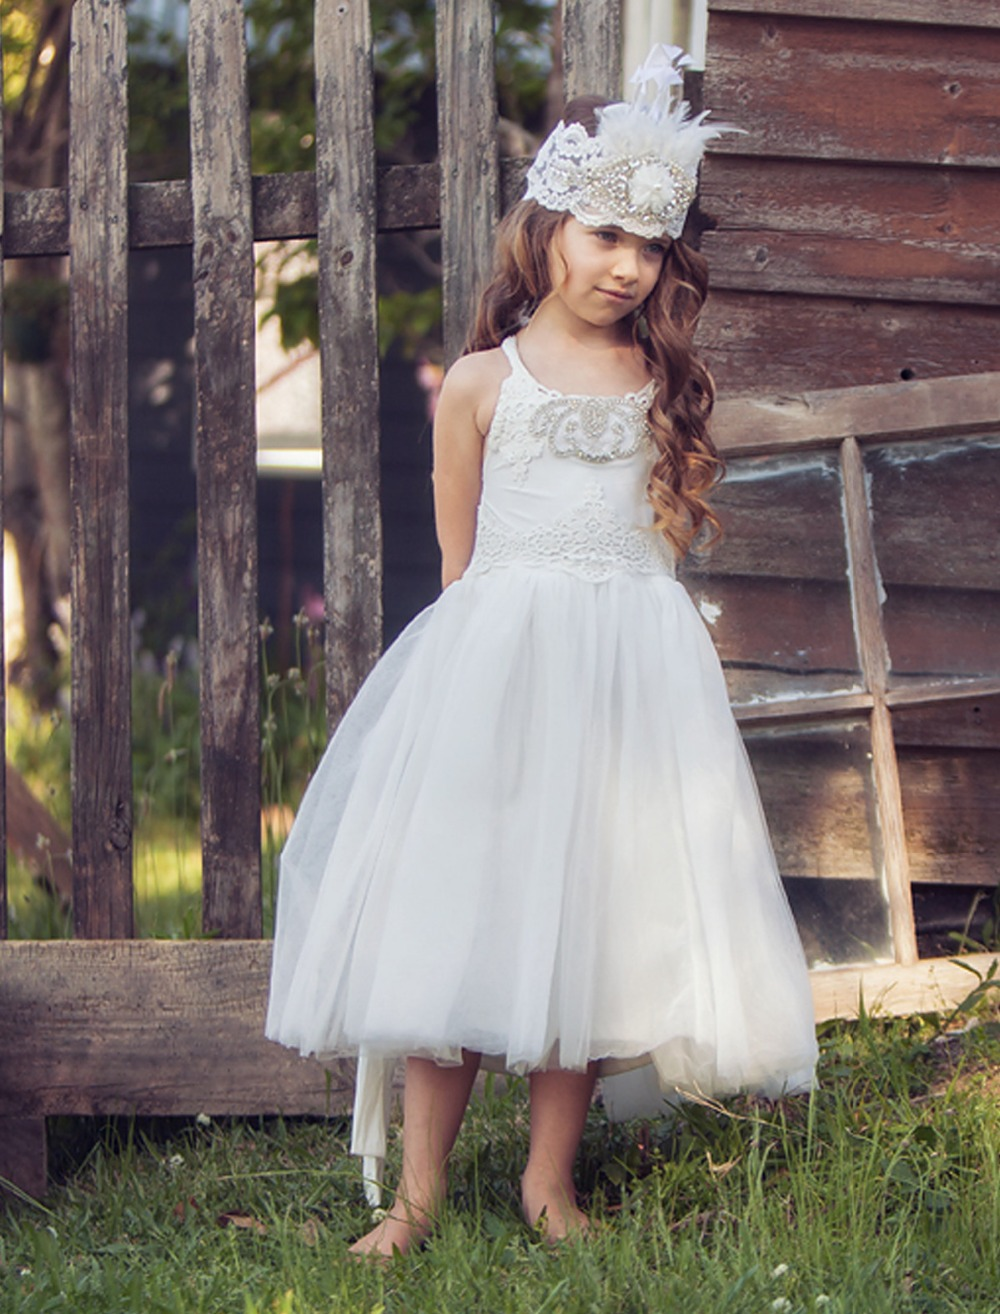 Lovely Crystal A-line Pageant Dress Spaghetti Straps O-Neck Mid-Calf White Flower Girl Dress For First Communion Wedding 0-12 Y double buckle cross straps mid calf boots